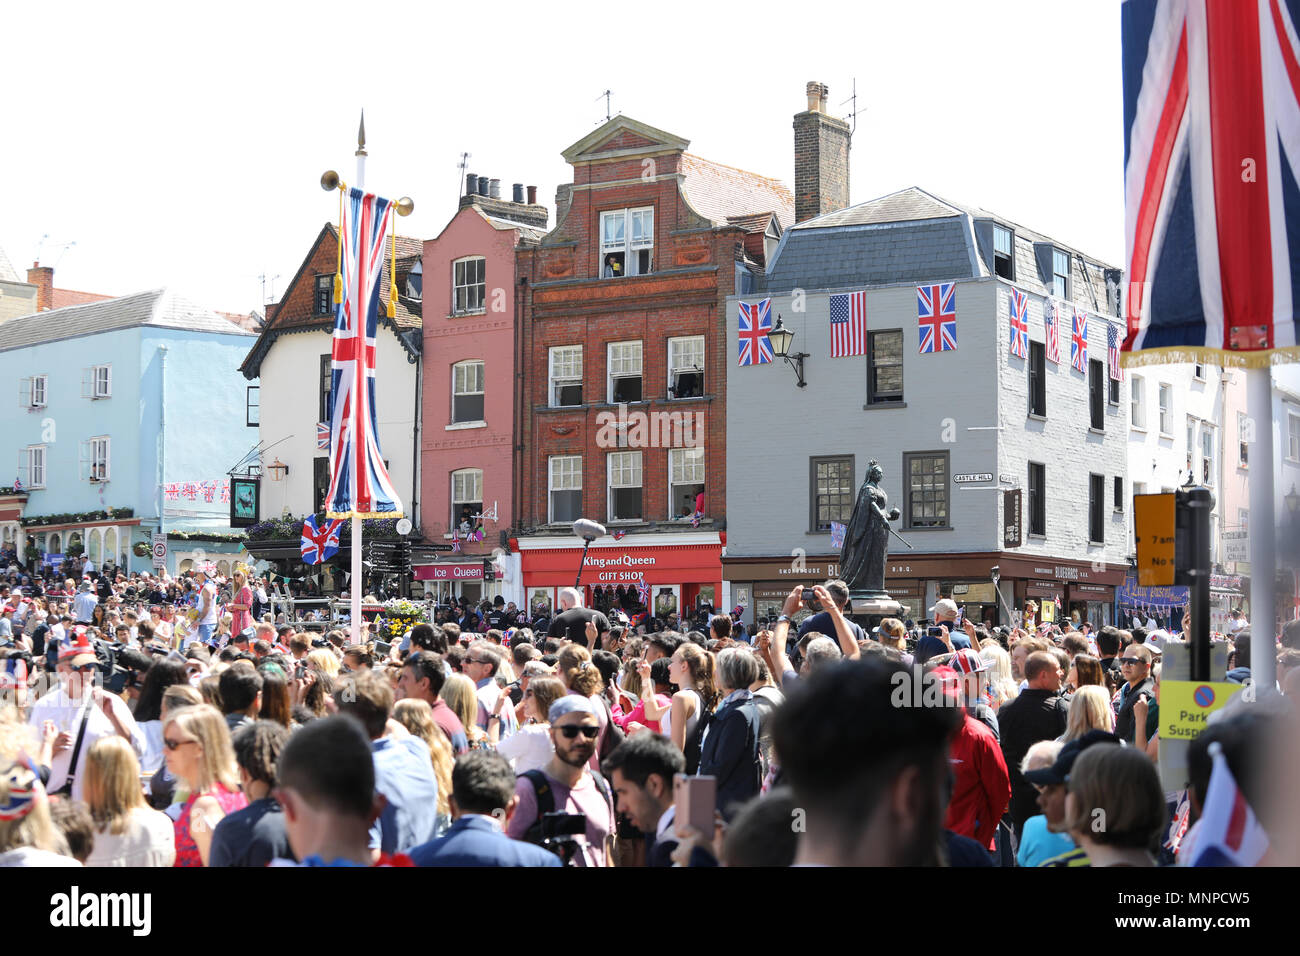 Windsor, UK, 19 May 2018.Royal wedding 19th May 2018 Prince Harry and Meghan Markle leaving Windsor Castle after ceremony Stock Photo